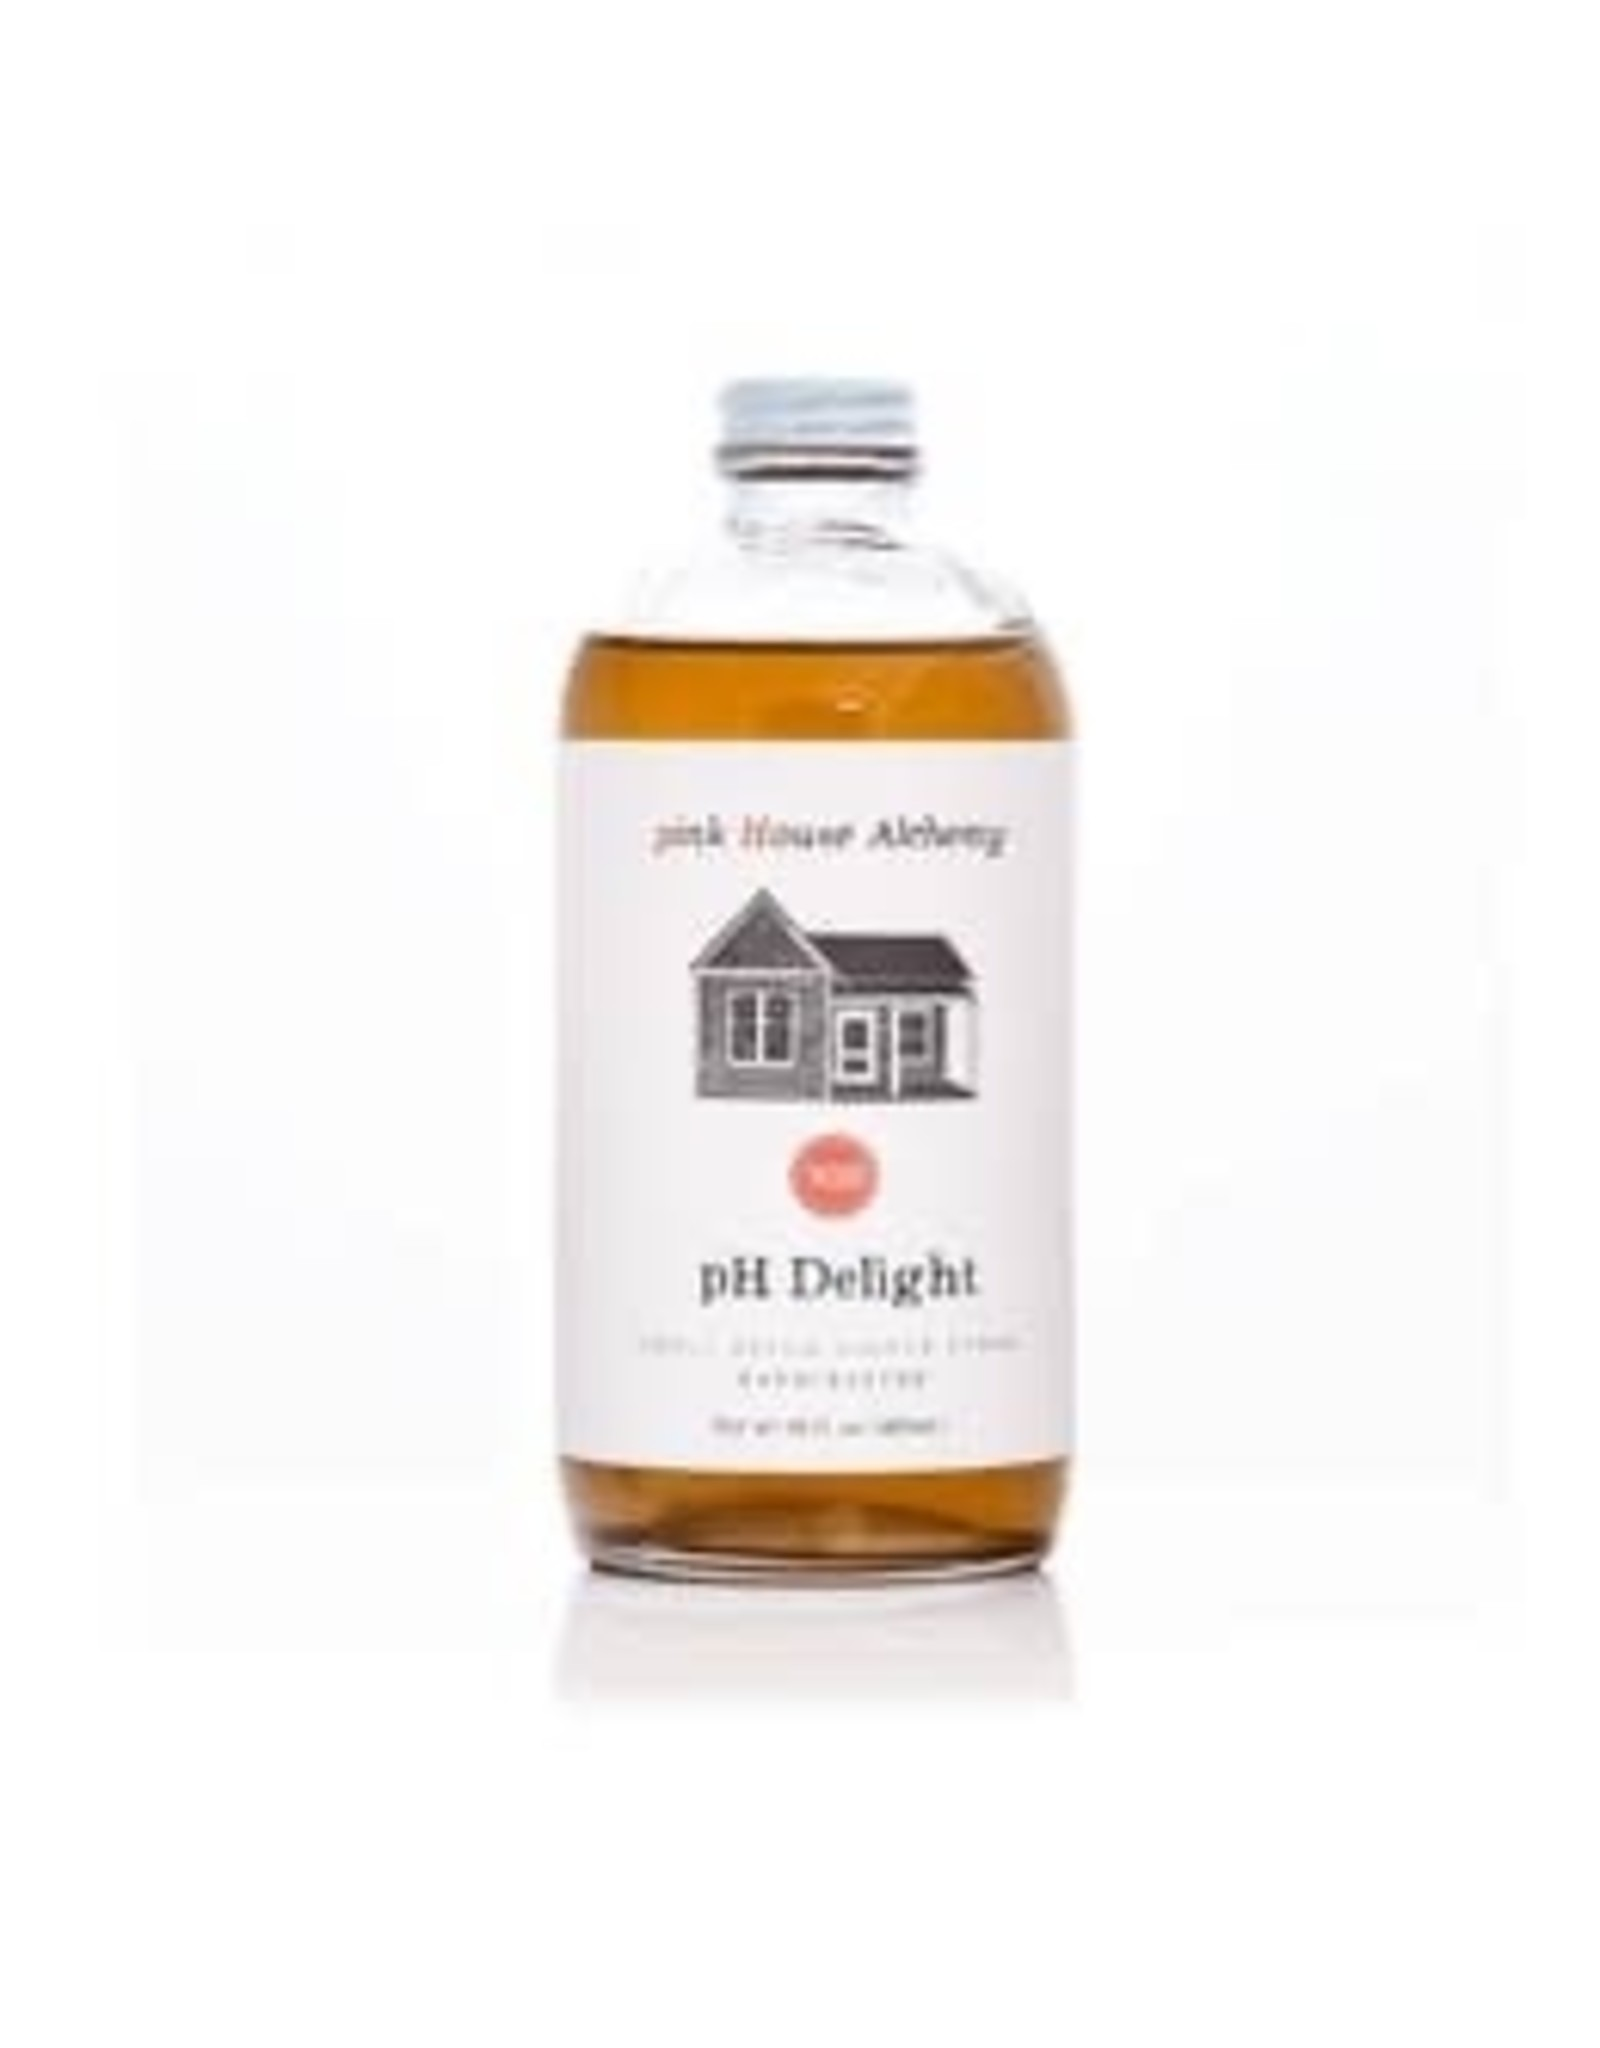 Pink House Alchemy pH Delight Simple Syrup